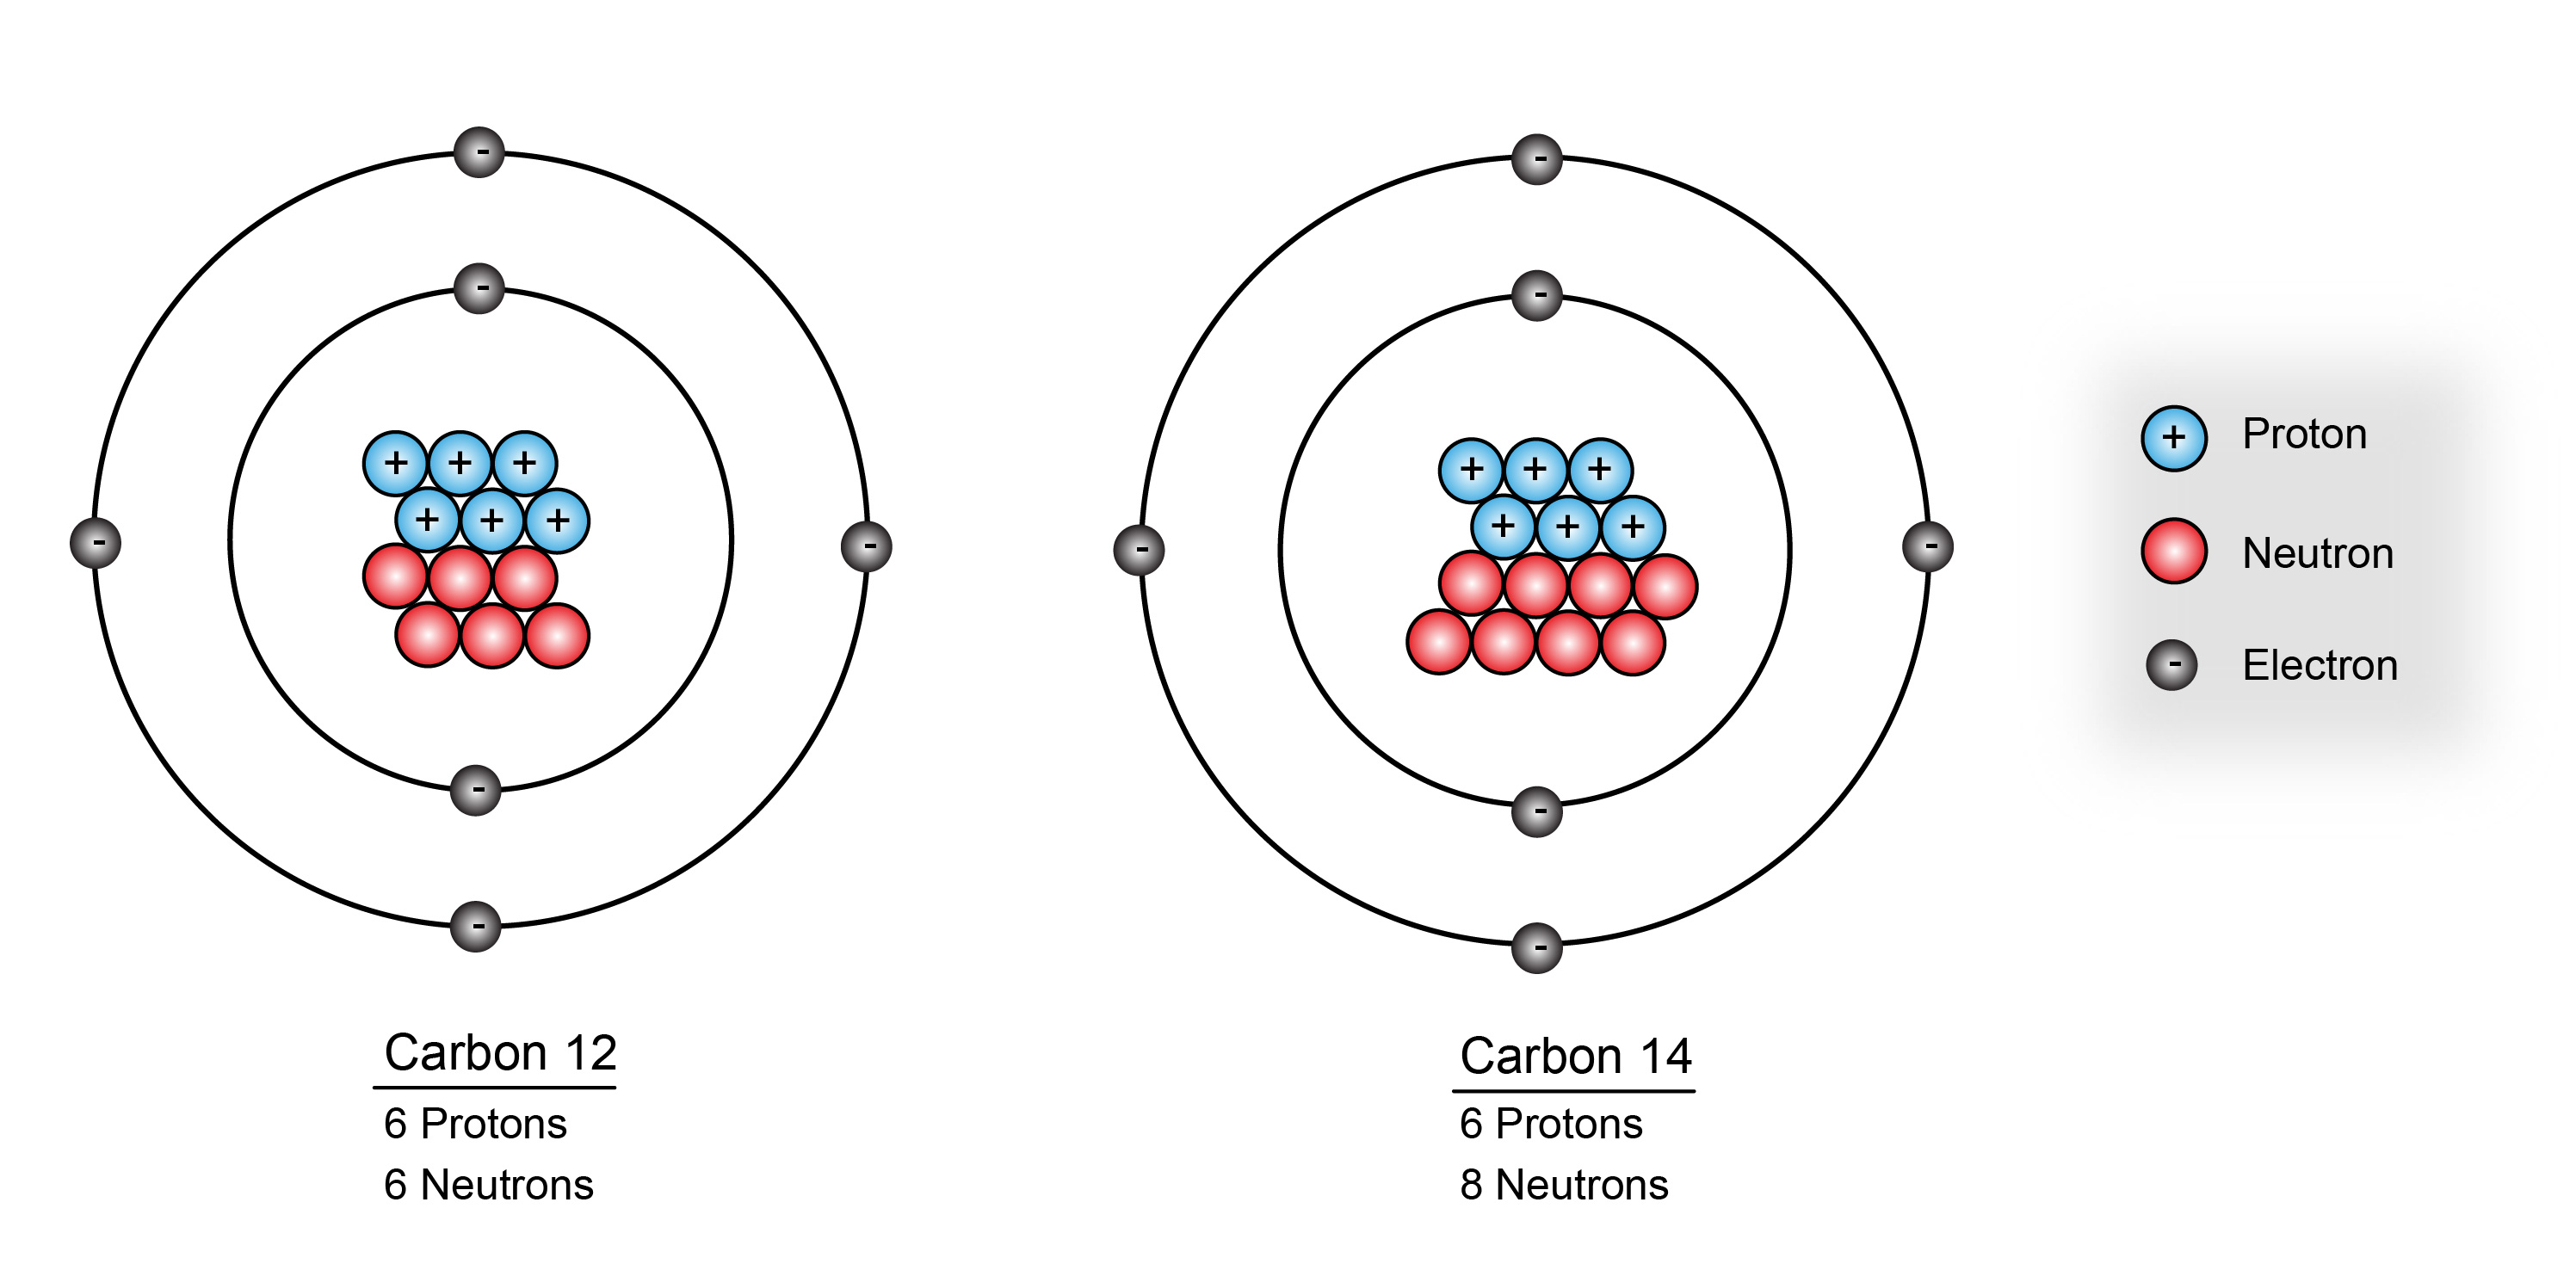 carbon 12 and 14 dating definition